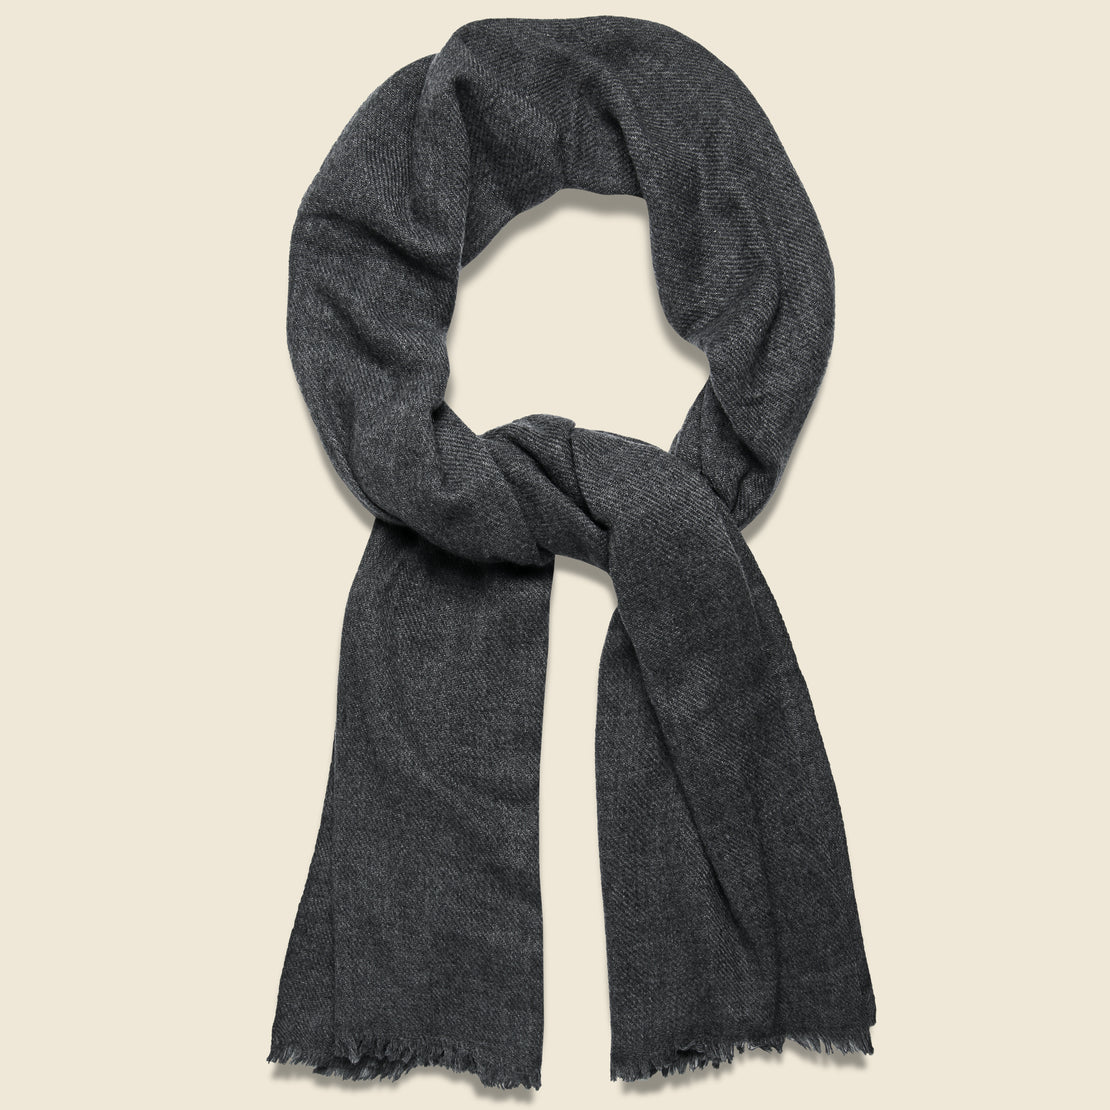 Auntie Oti Basketweave Camel Hair Scarf - Dark Grey